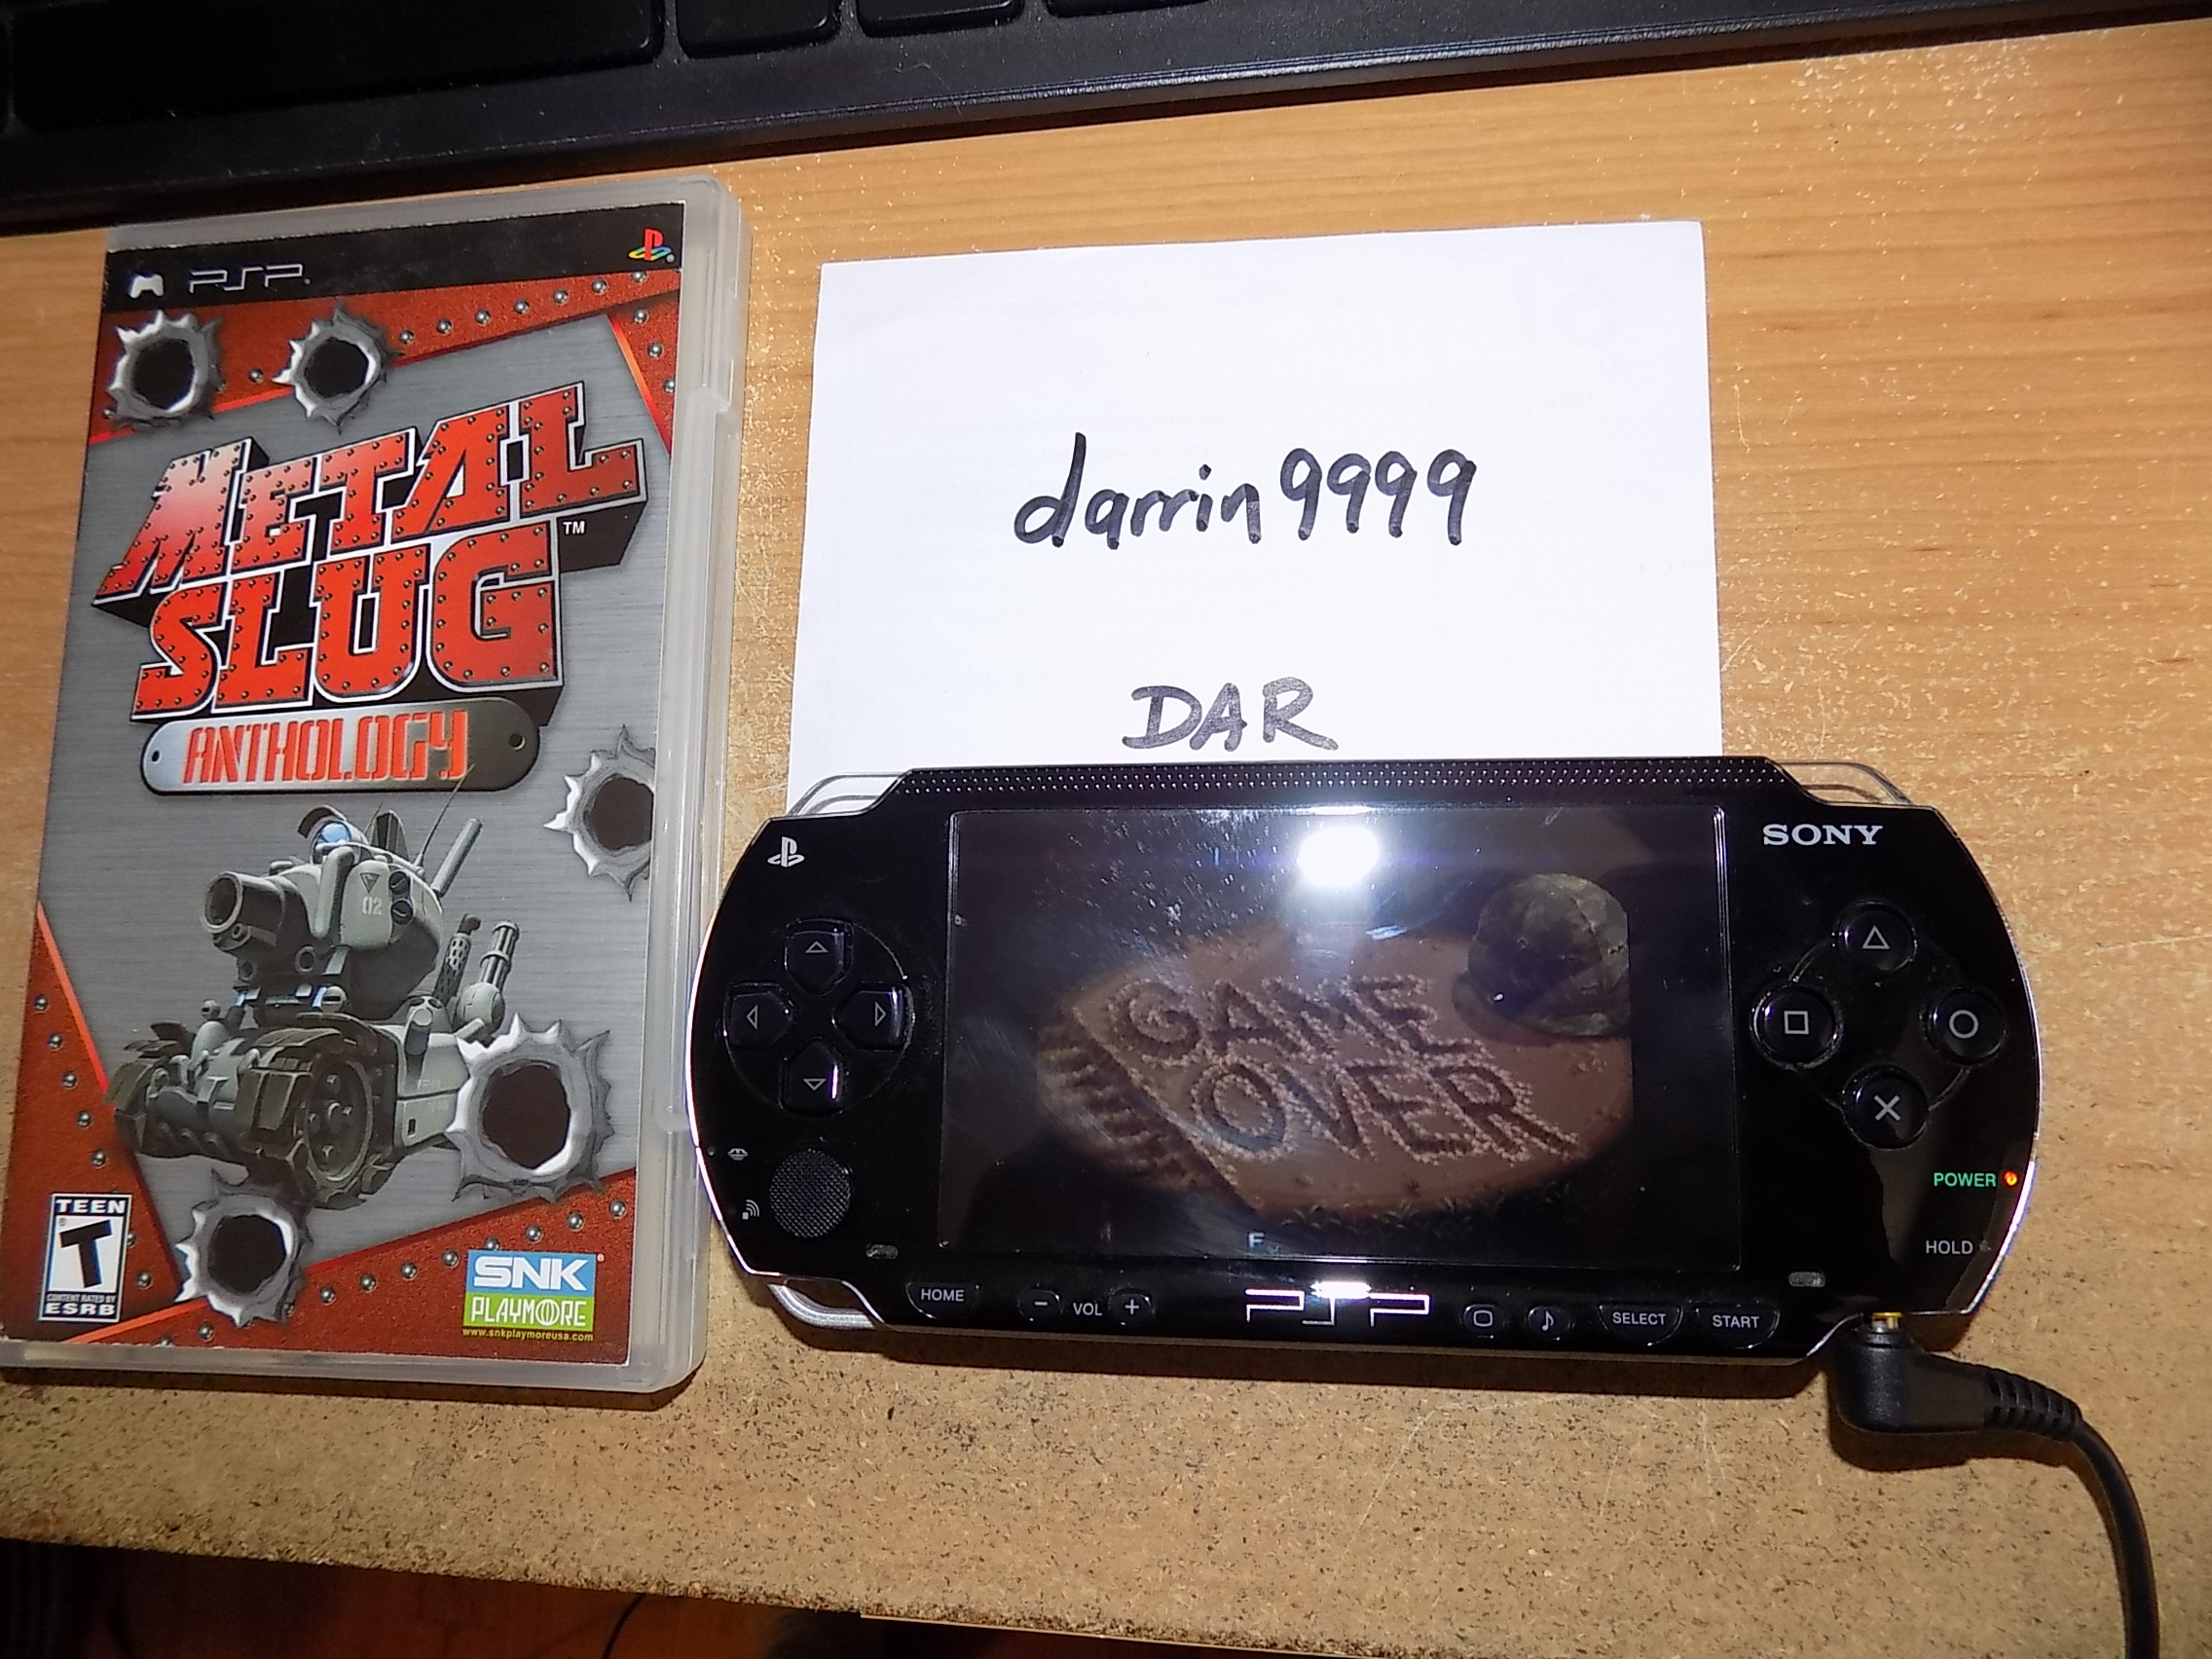 darrin9999: Metal Slug Anthology: Metal Slug 4 (PSP) 25,500 points on 2018-09-14 15:54:11